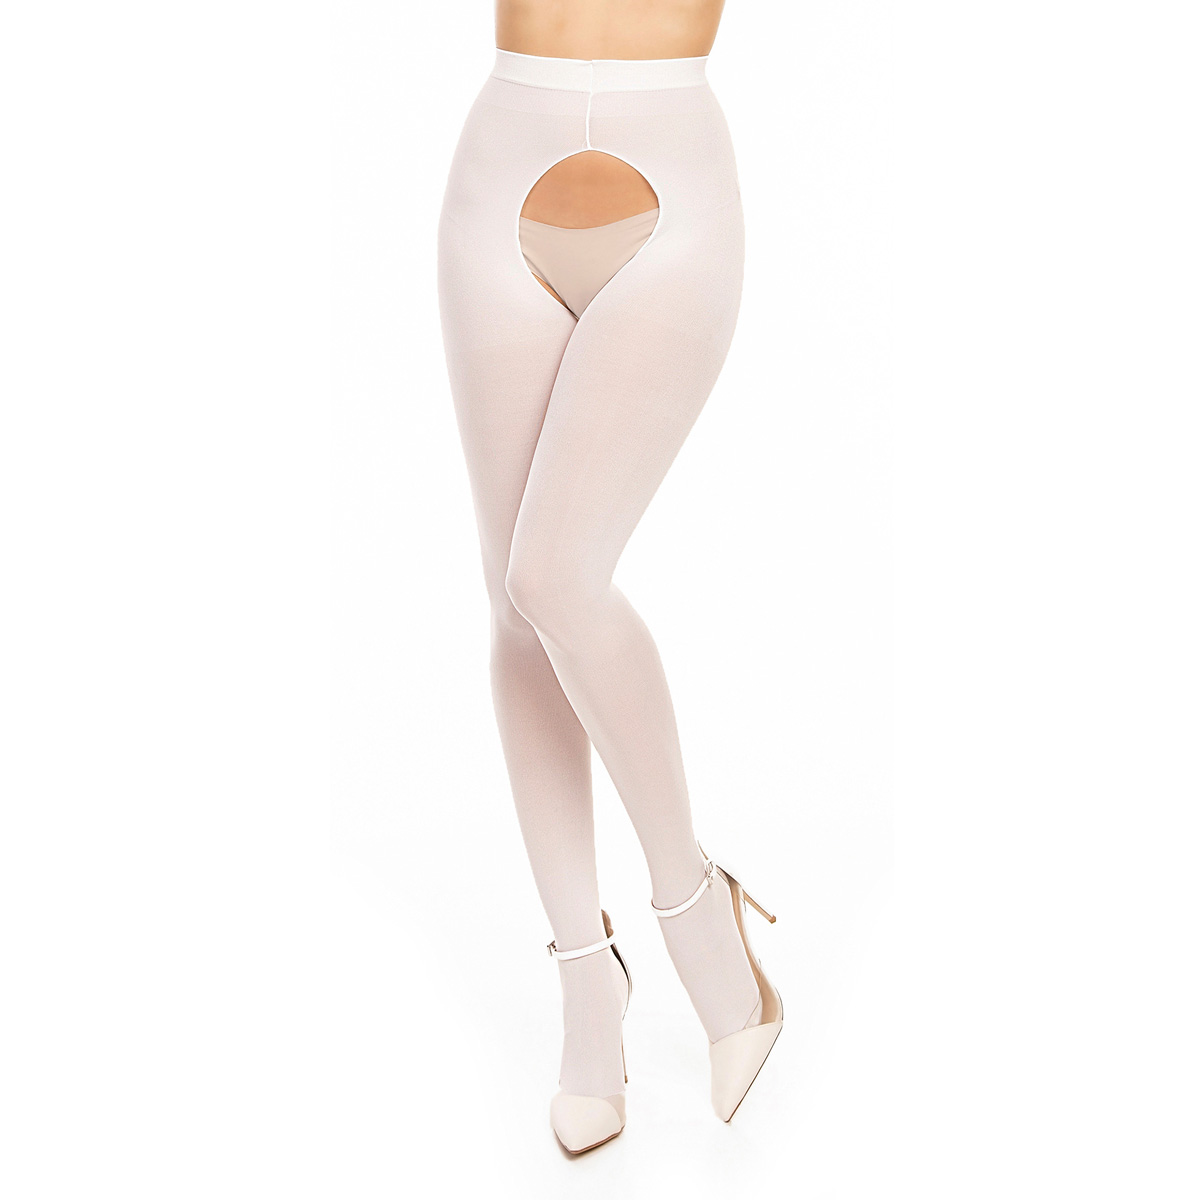 ff84b930906 Tights OUVERT 60 - White